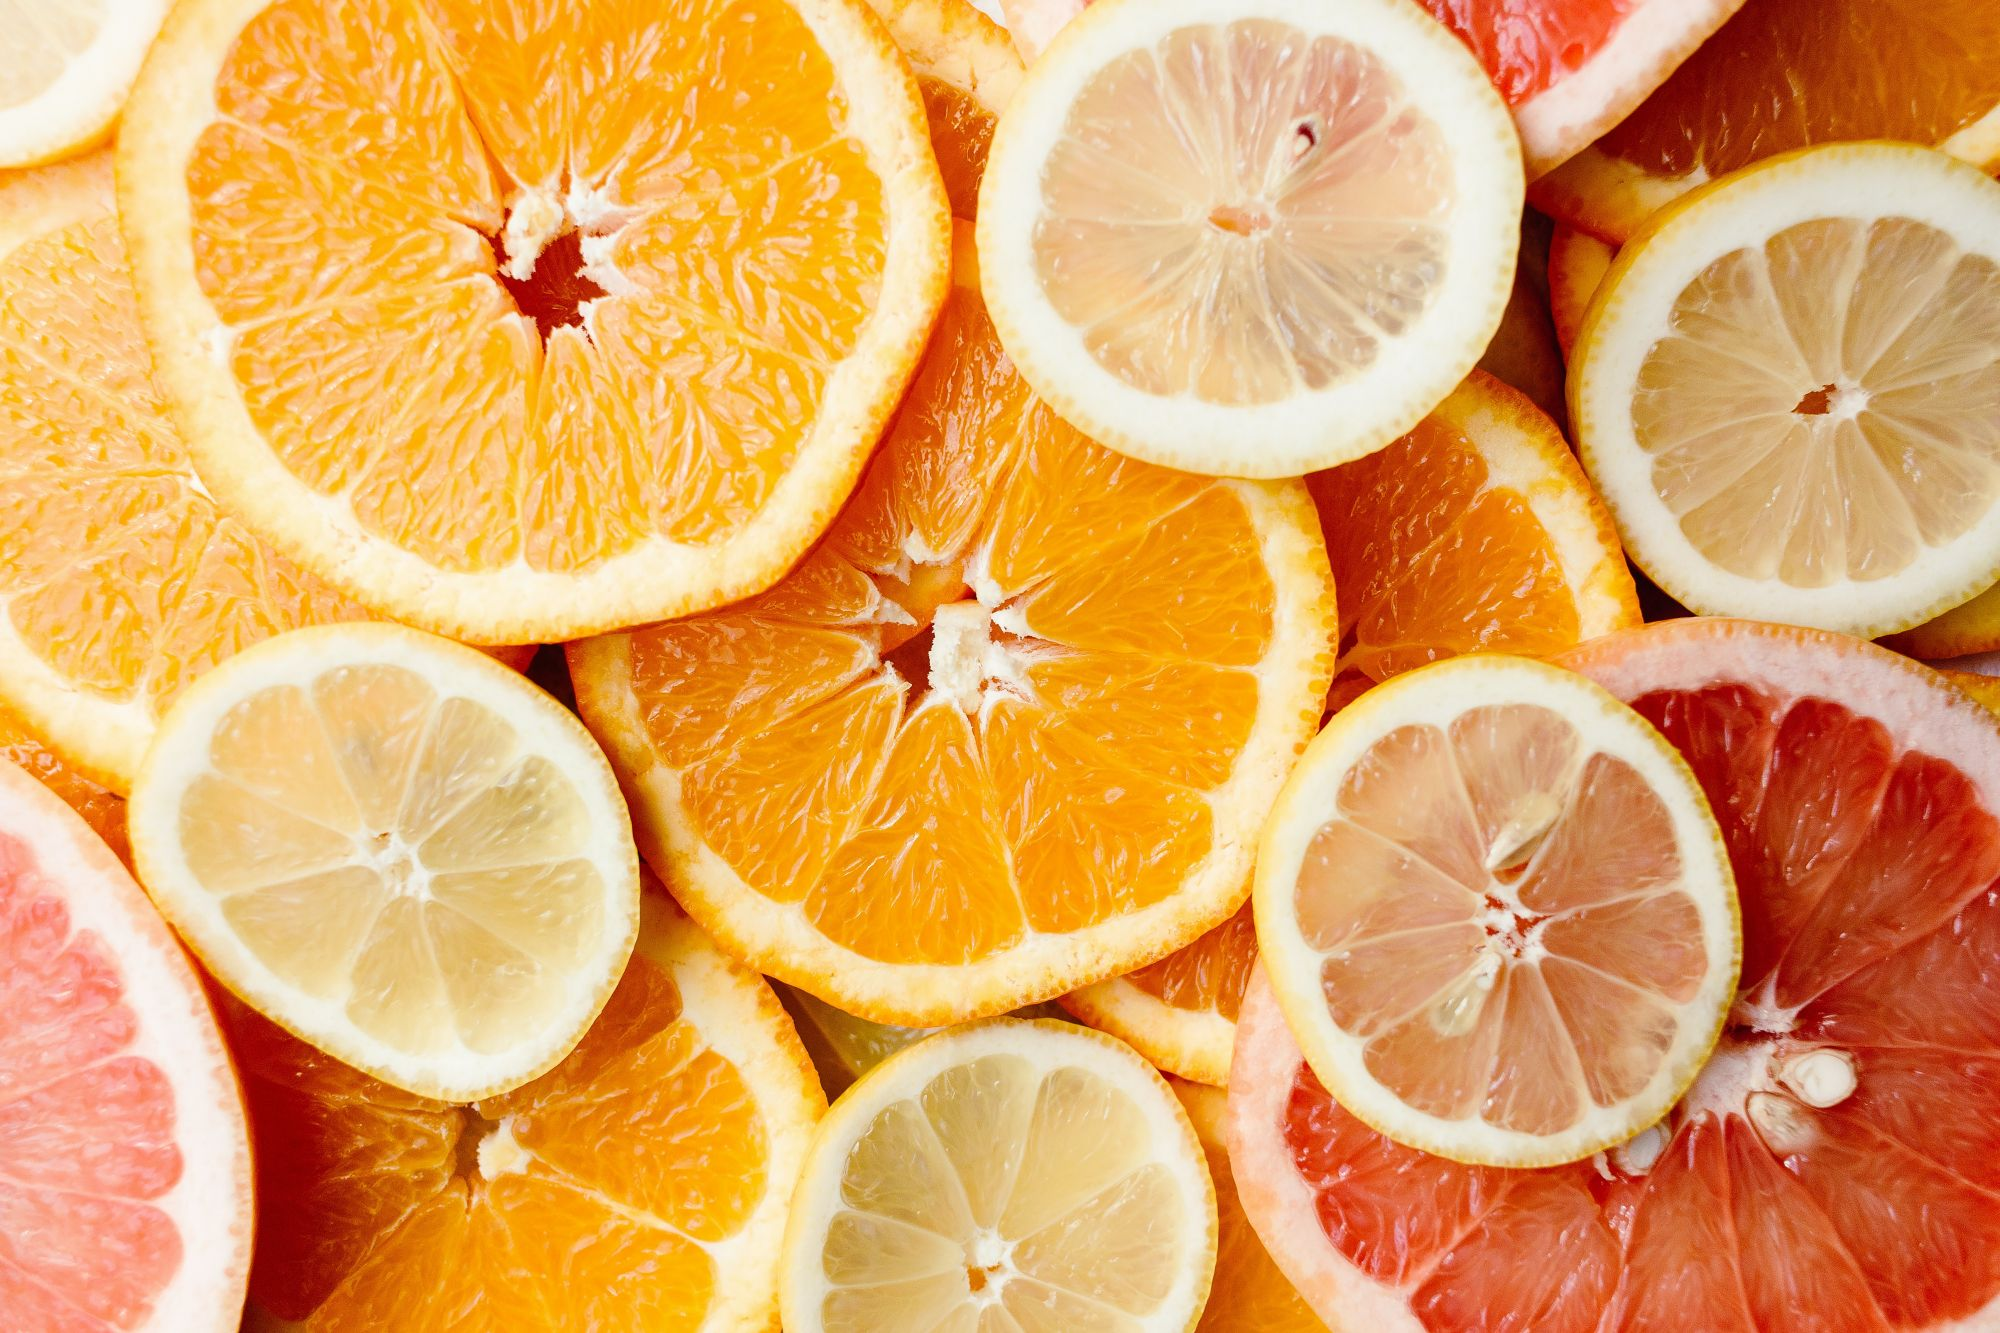 Coronavirus Tips: Vitamins And Minerals To Strengthen Your Immune System